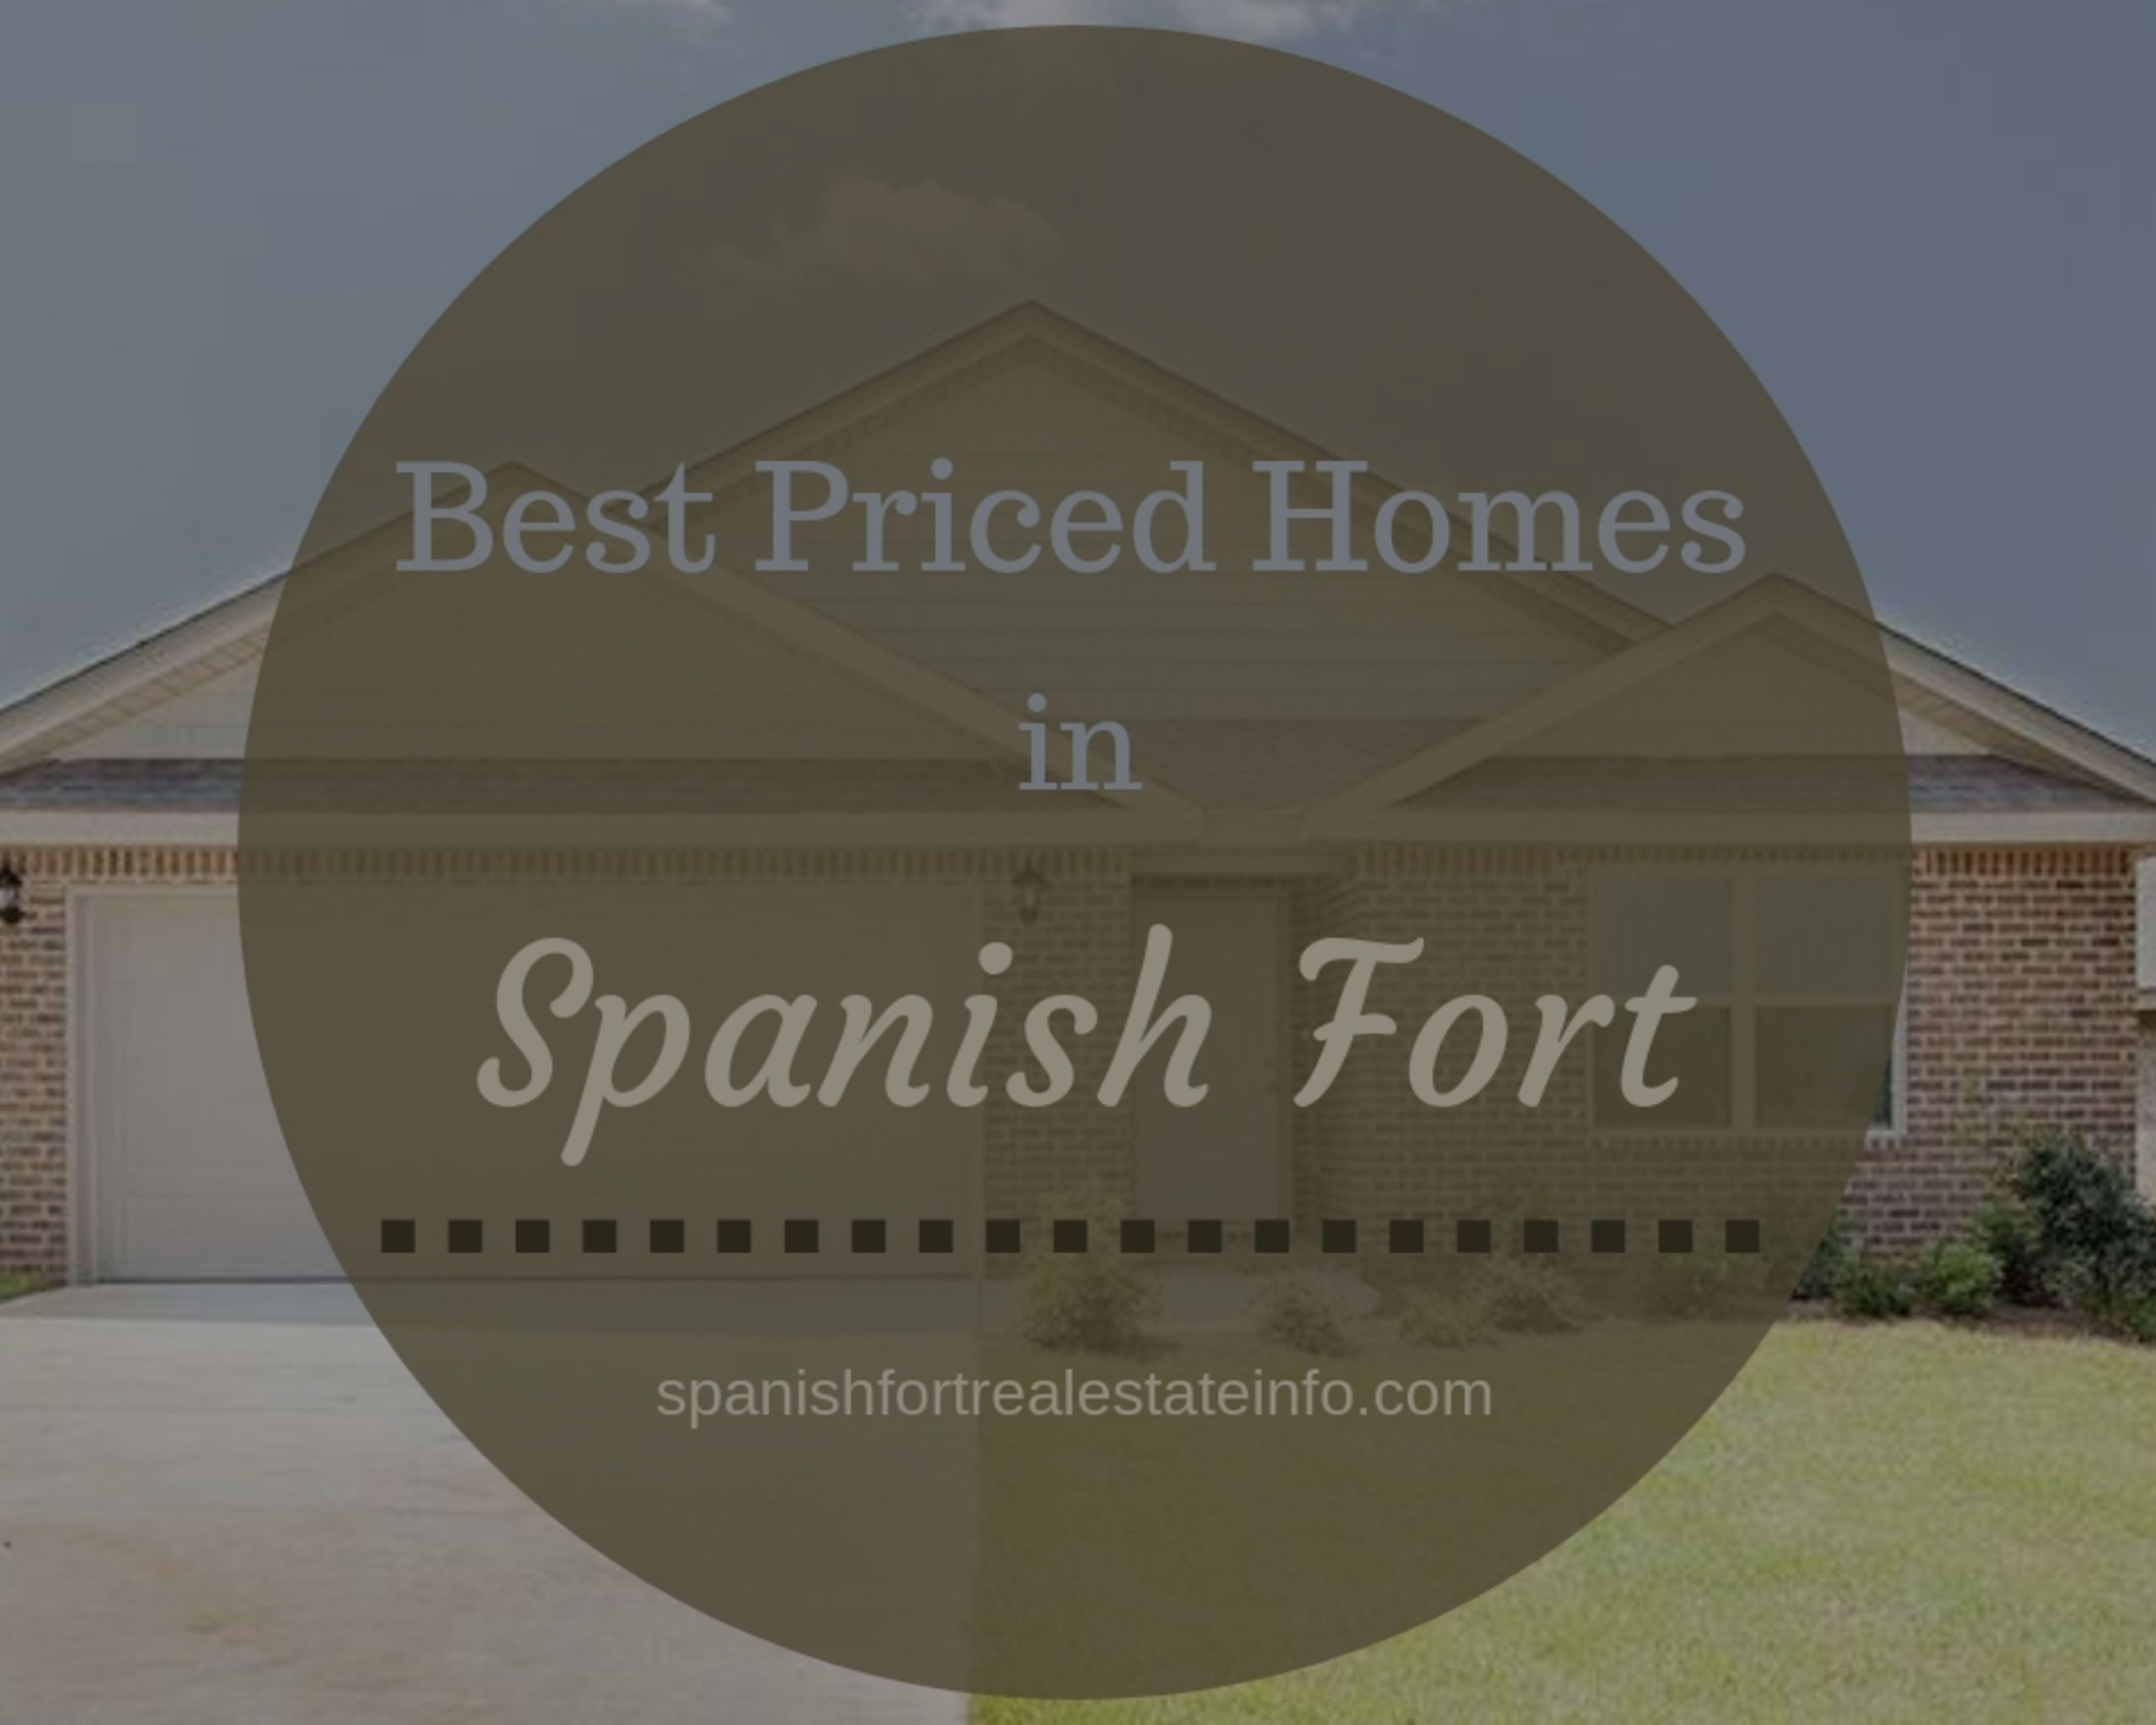 Best Priced Homes in Spanish Fort – January 2019